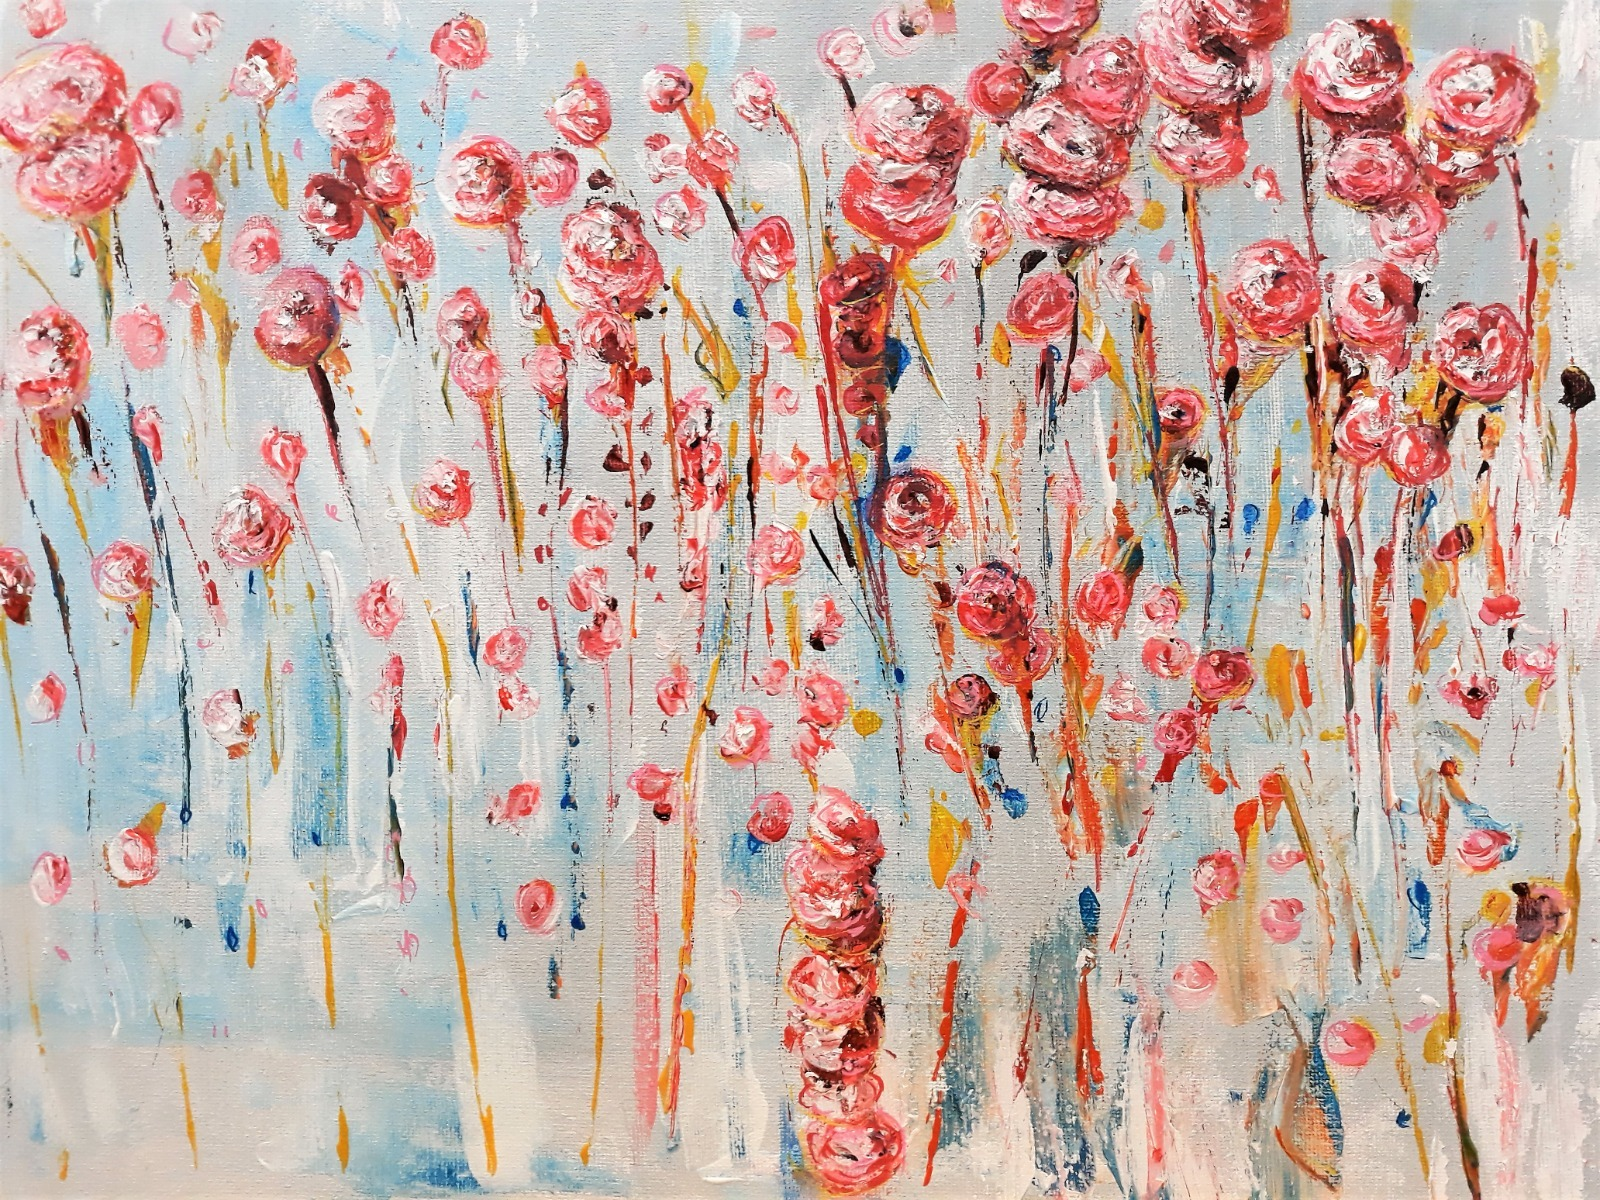 A Floral Frenzy